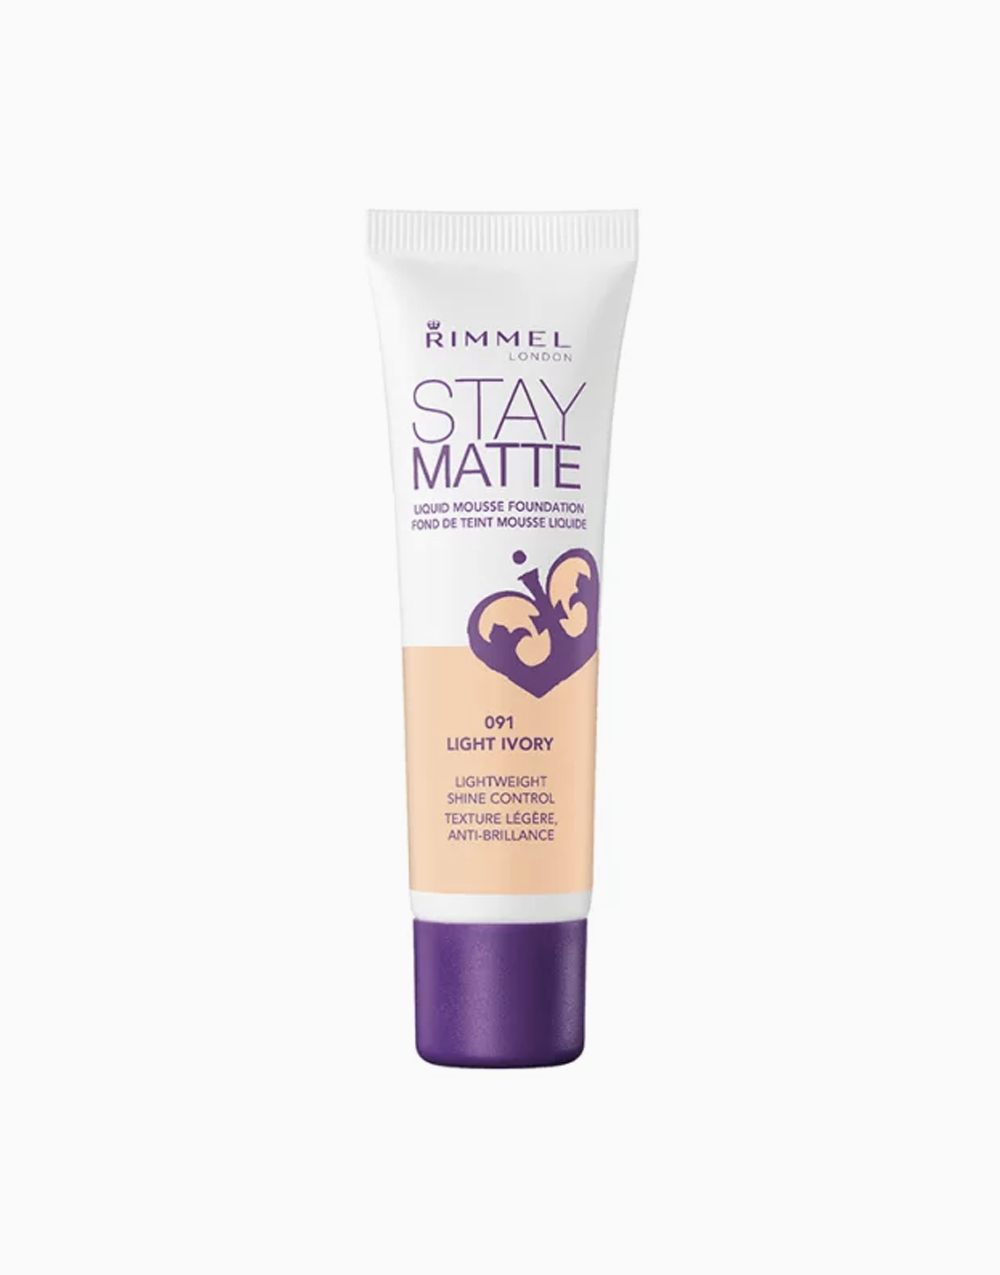 Stay Matte Mousse Foundation by Rimmel | Light Ivory